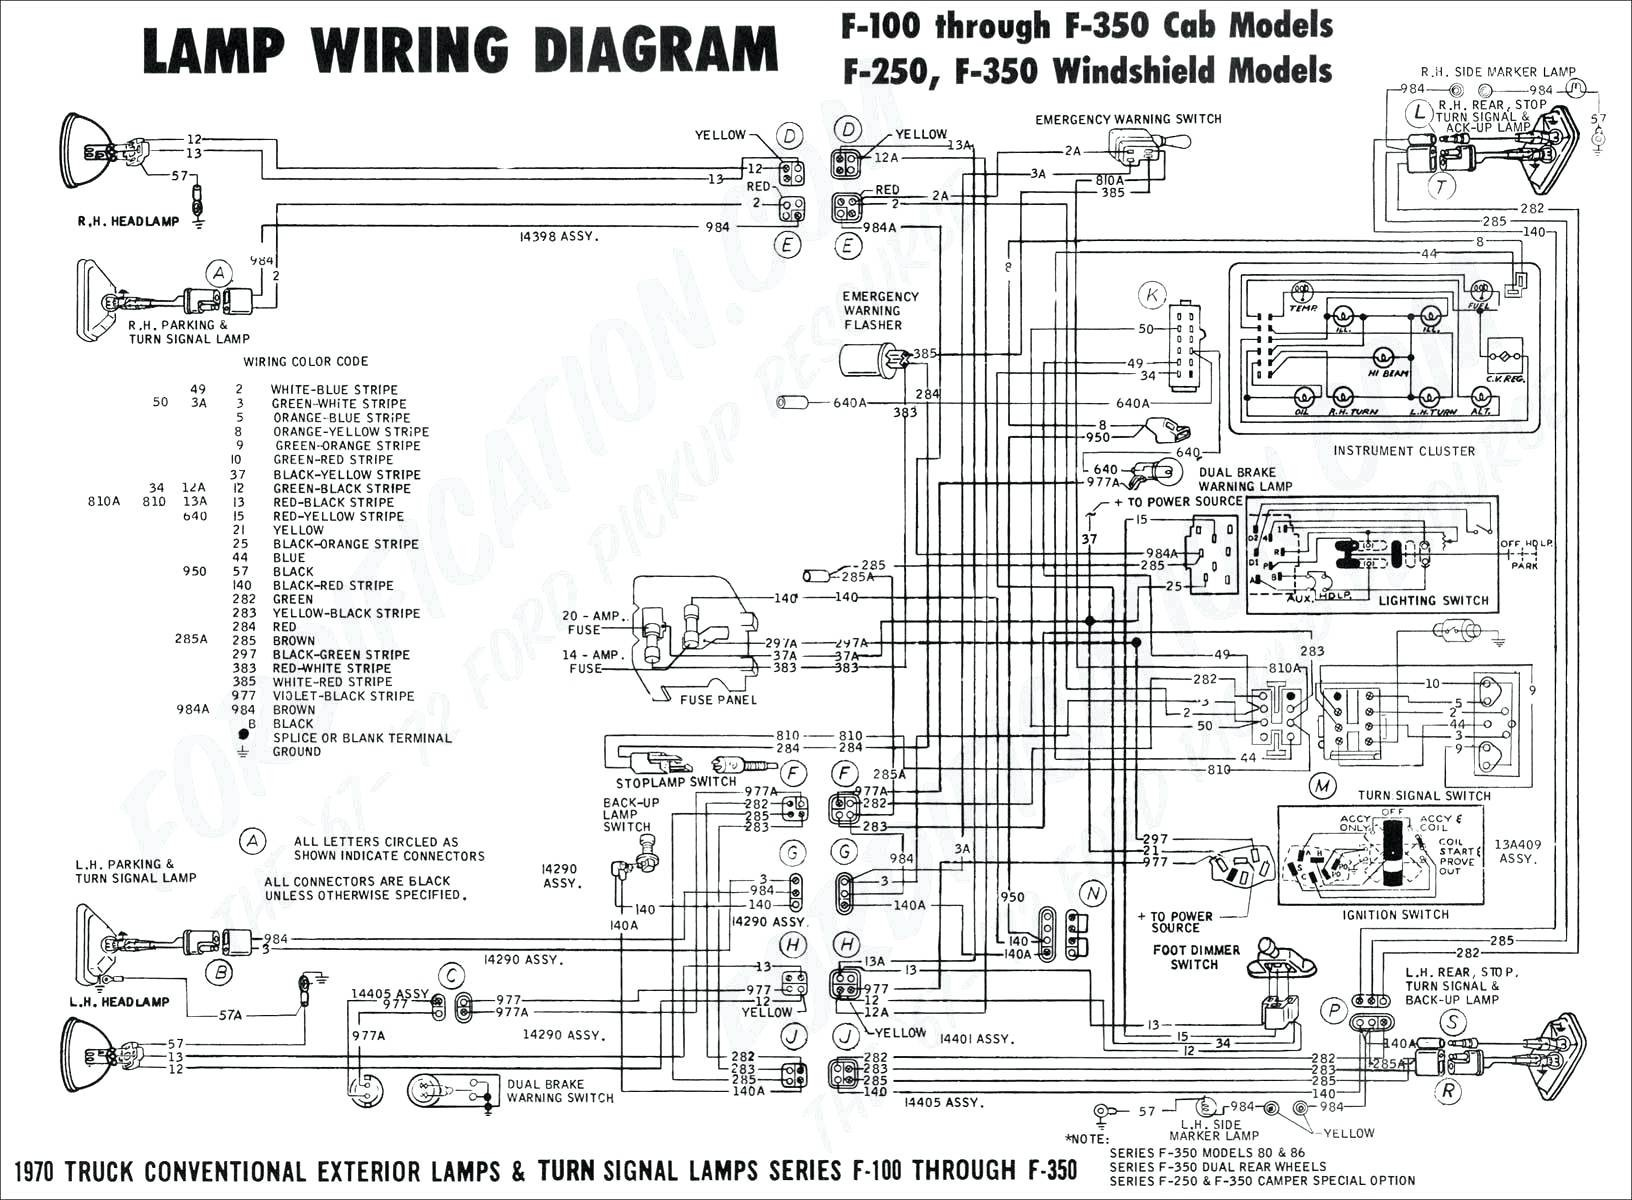 2005 ford Expedition Engine Diagram 2003 ford Thunderbird Engine Diagram Wiring Diagram Services • Of 2005 ford Expedition Engine Diagram